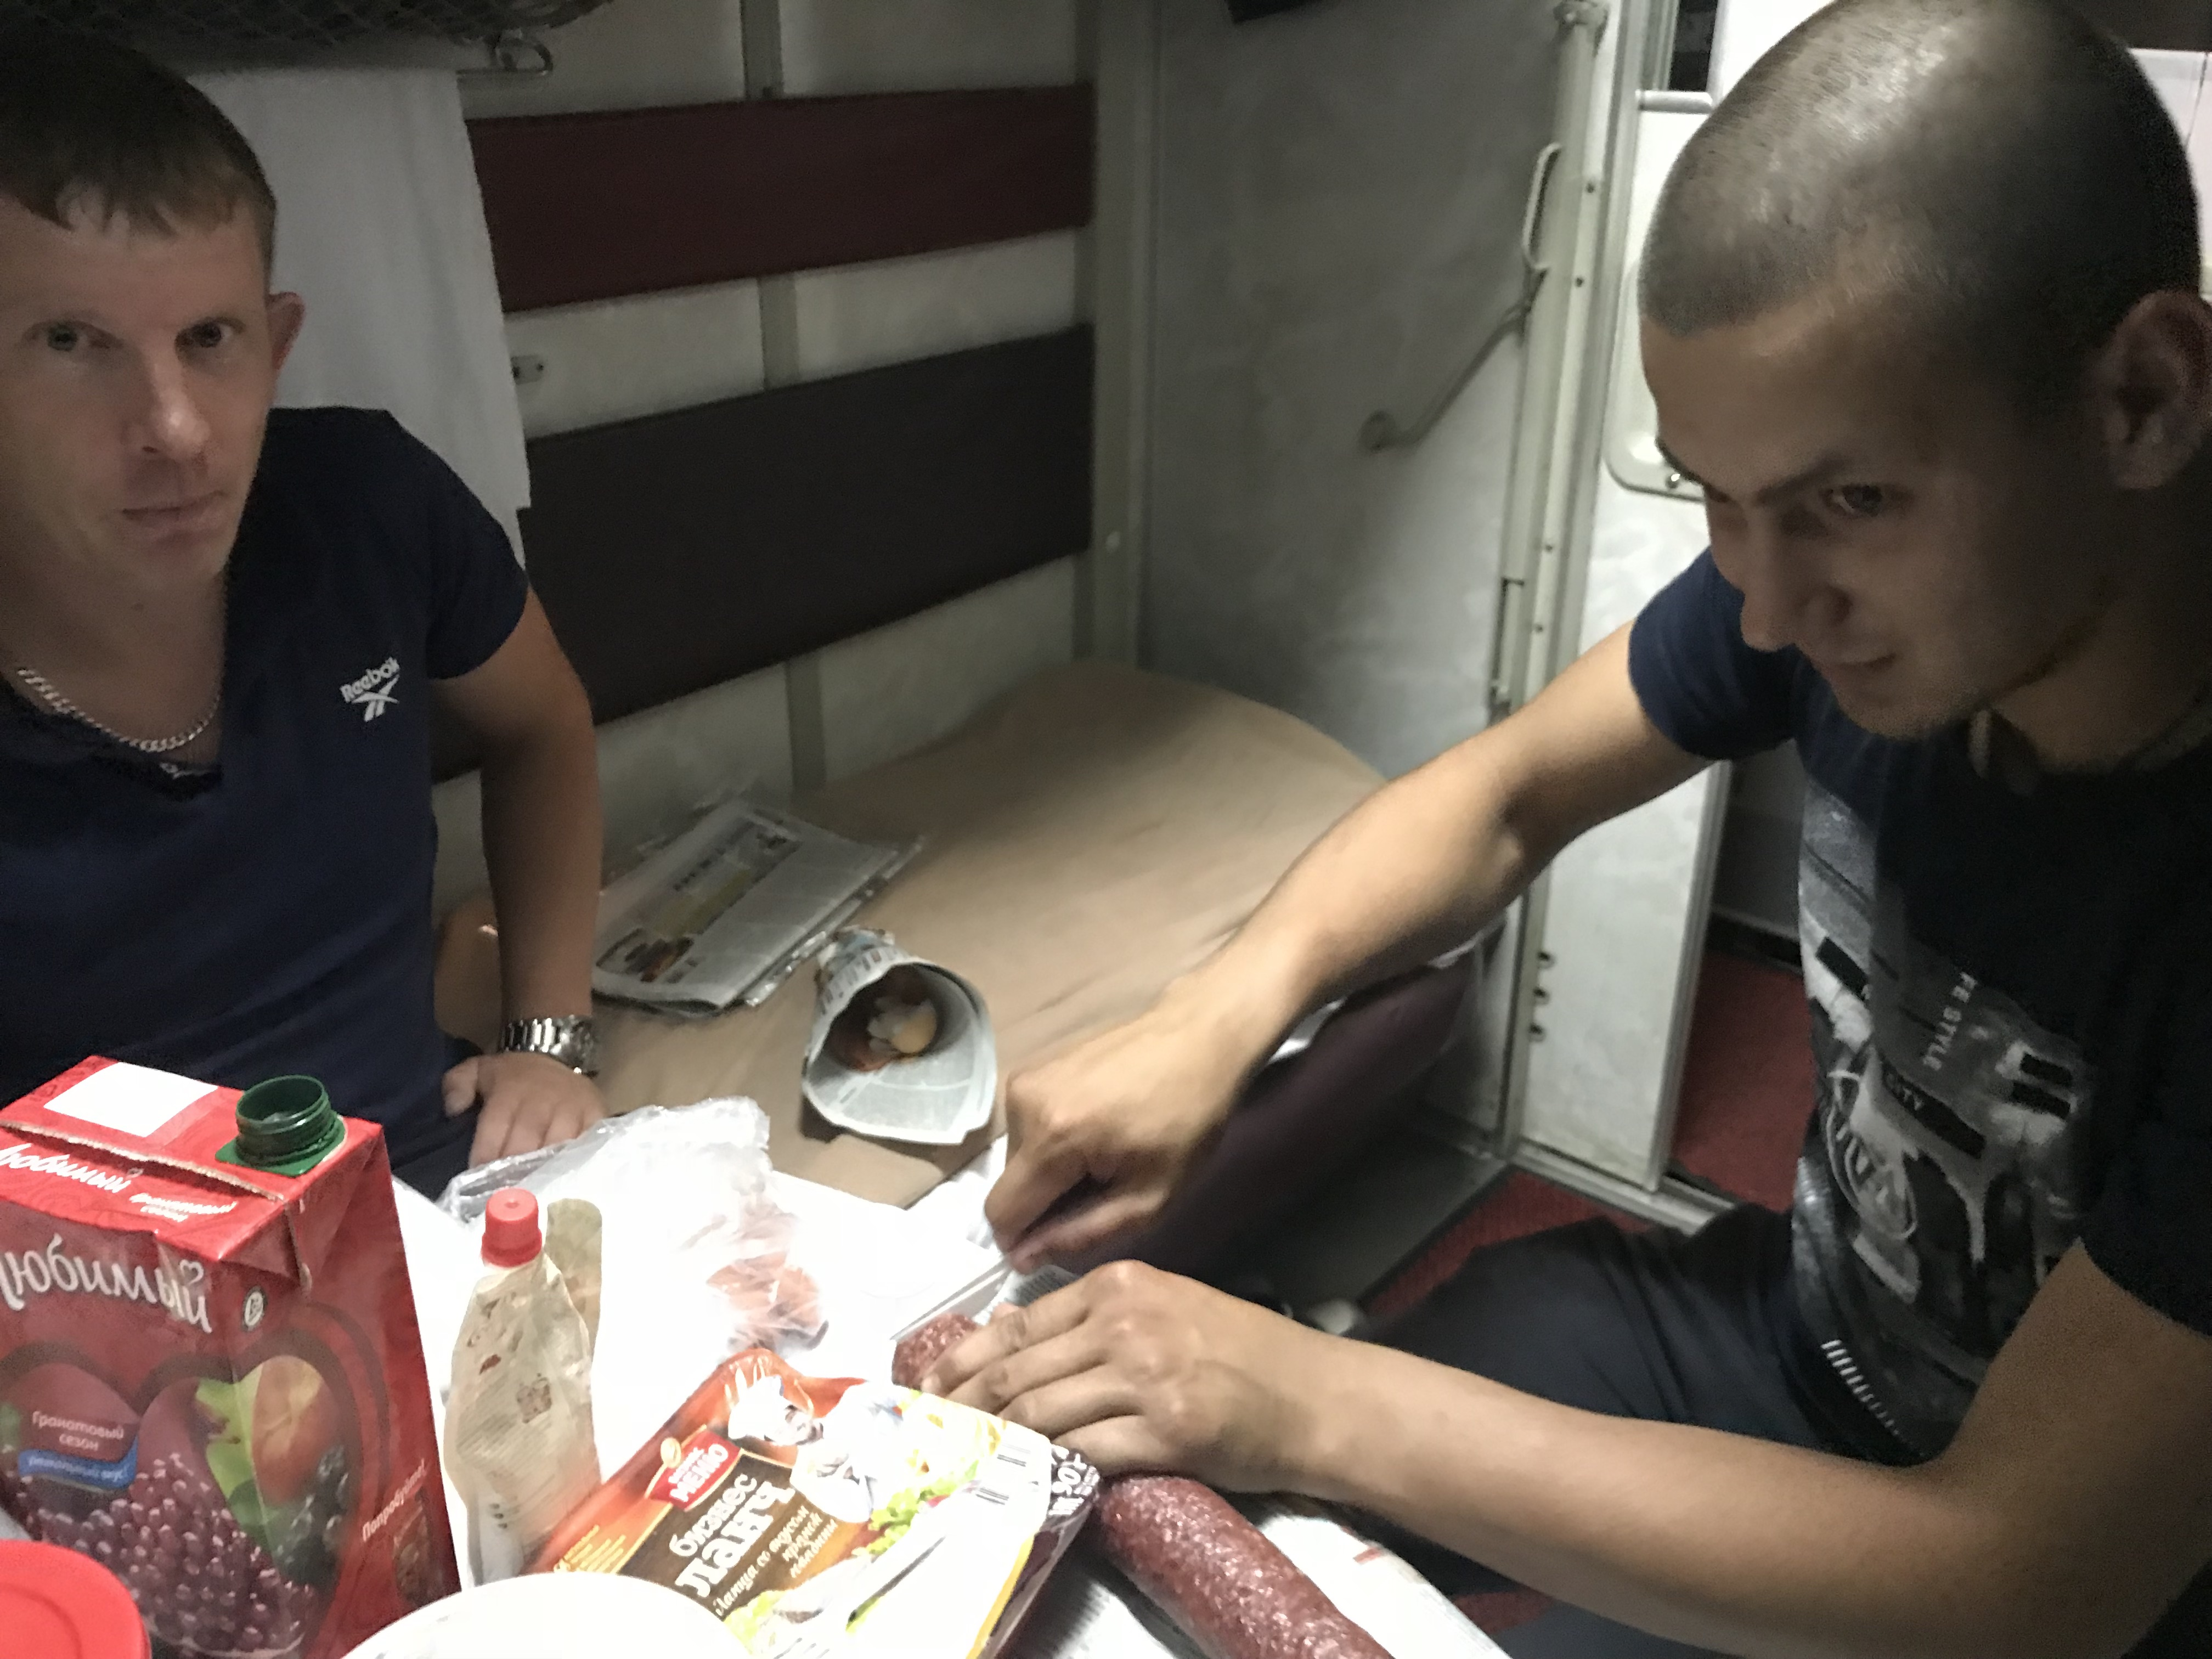 Russian cabin-mates sharing food from home, as customary.